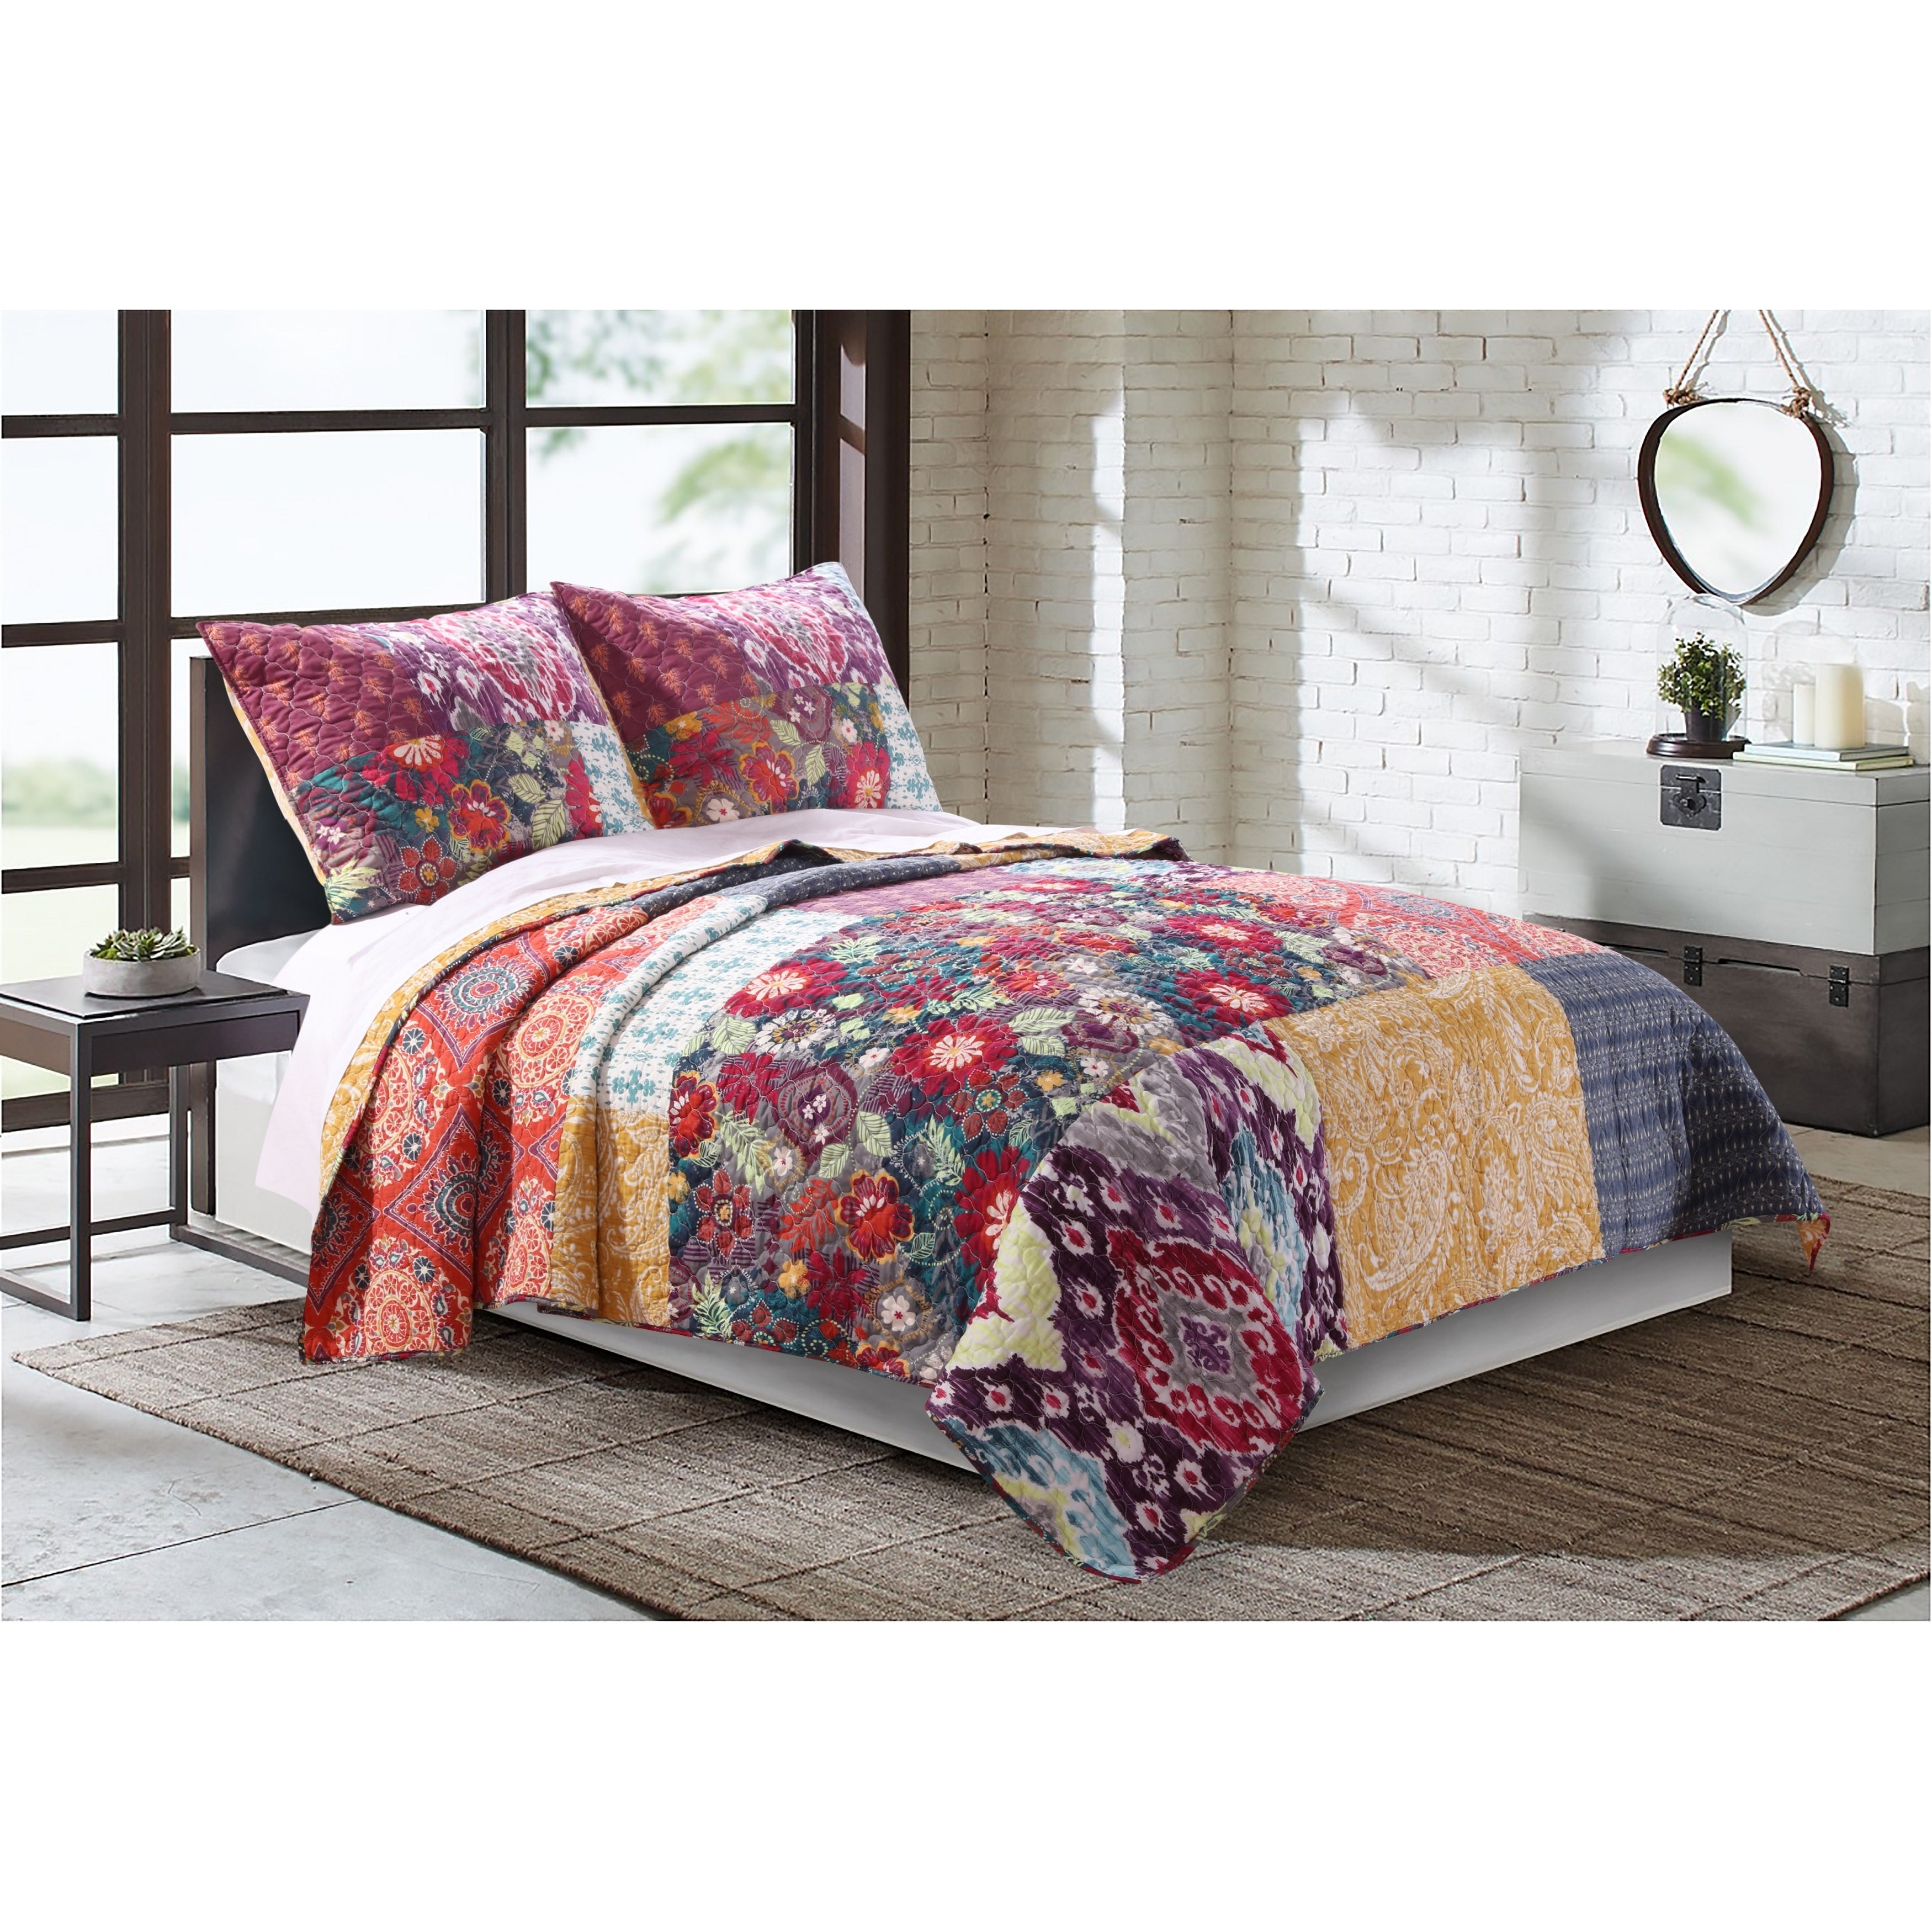 called year pretty design new fabrics quilt a smith made tilda quilts little my happy pin b using